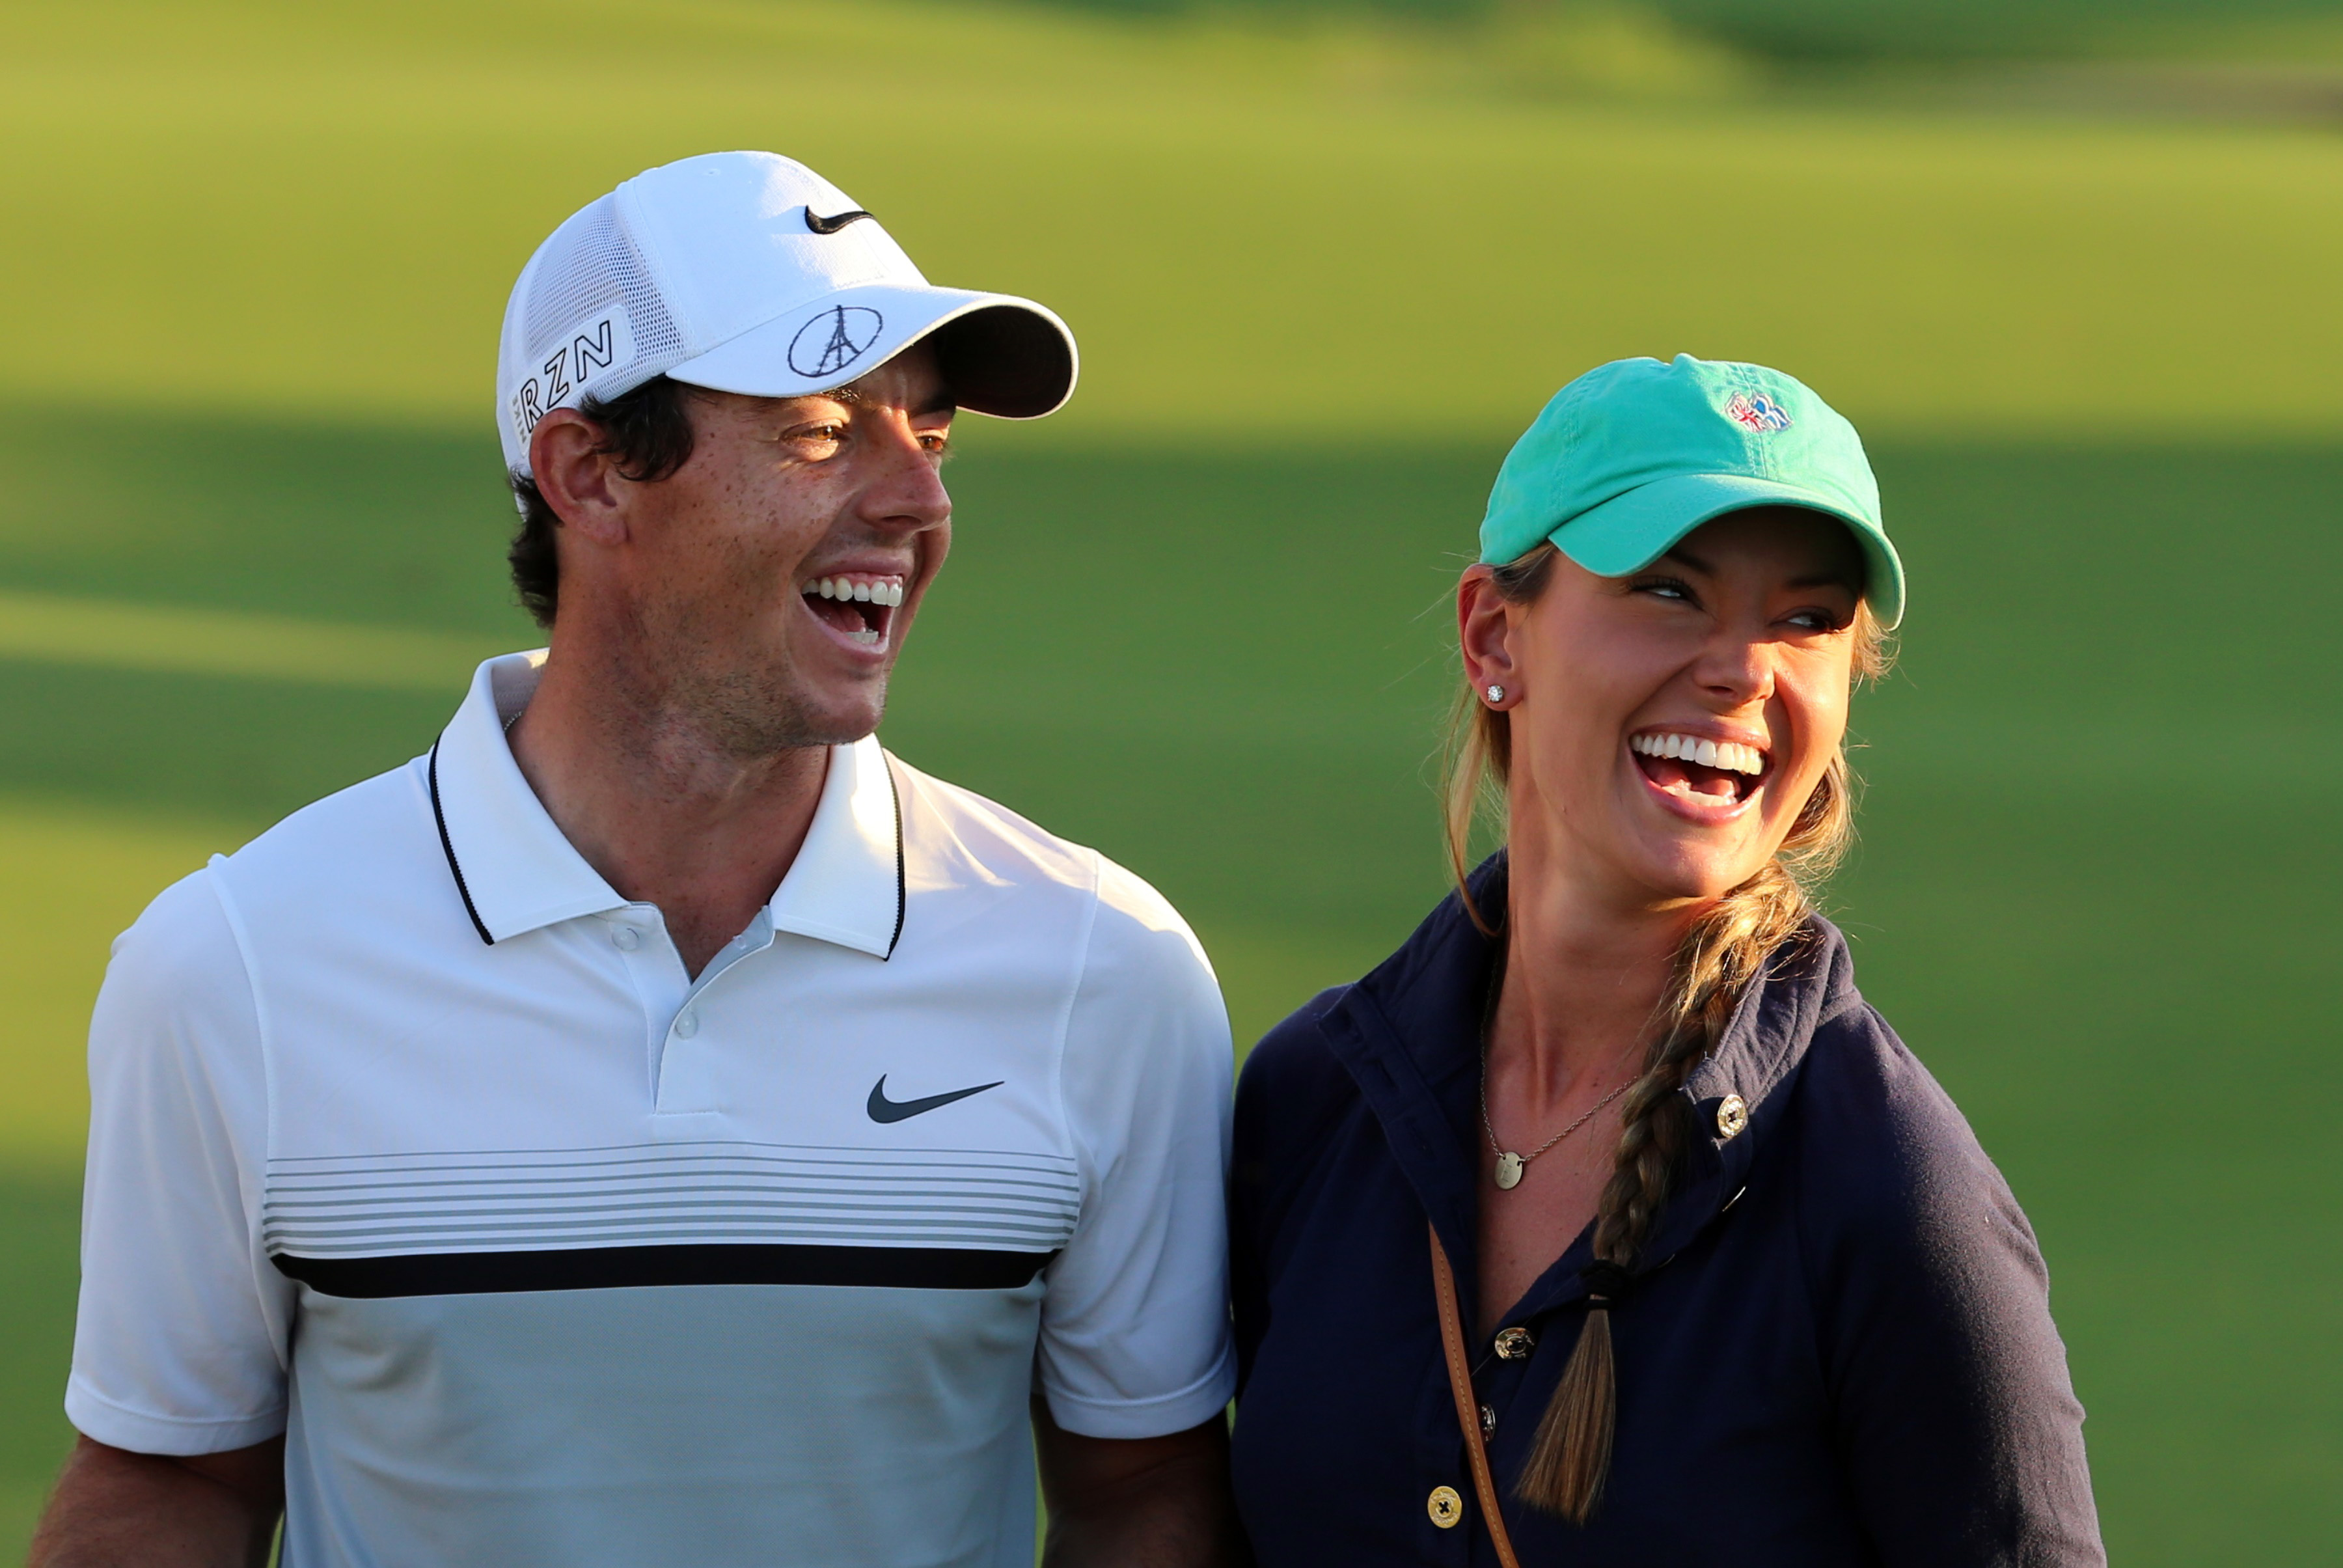 McIlroy and Erica got married in 2017